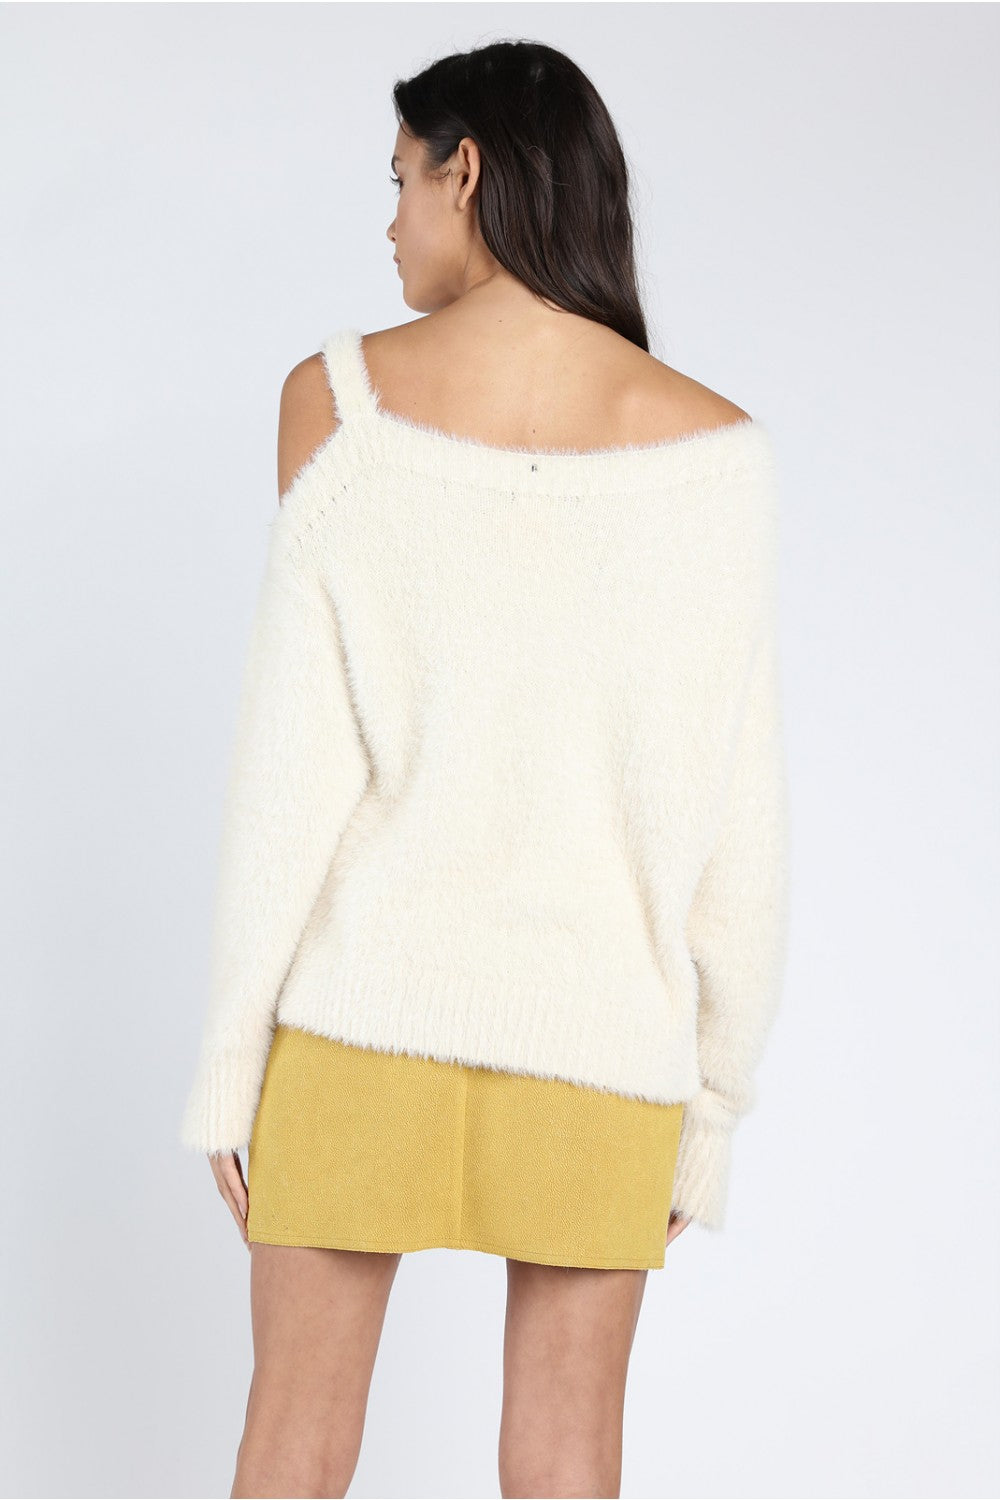 Warm Fuzzy Feelings Sweater